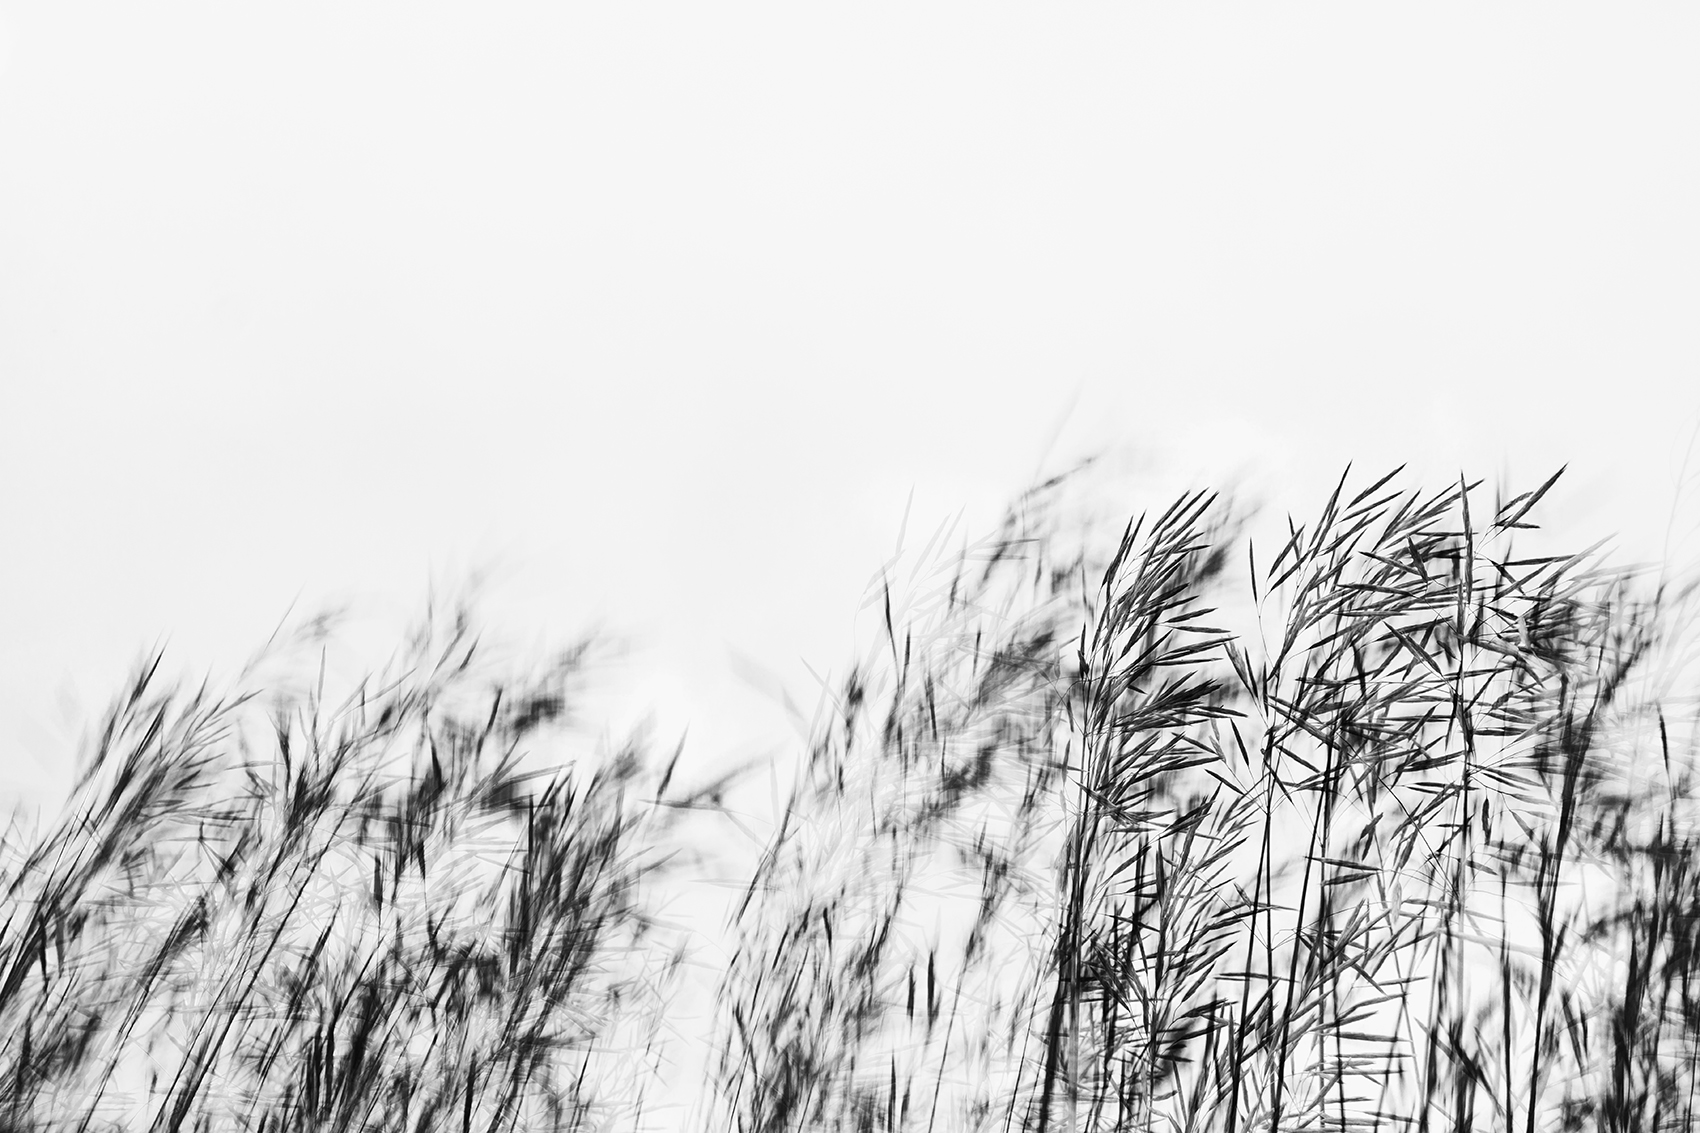 black and white photo of wheat blowing in wind